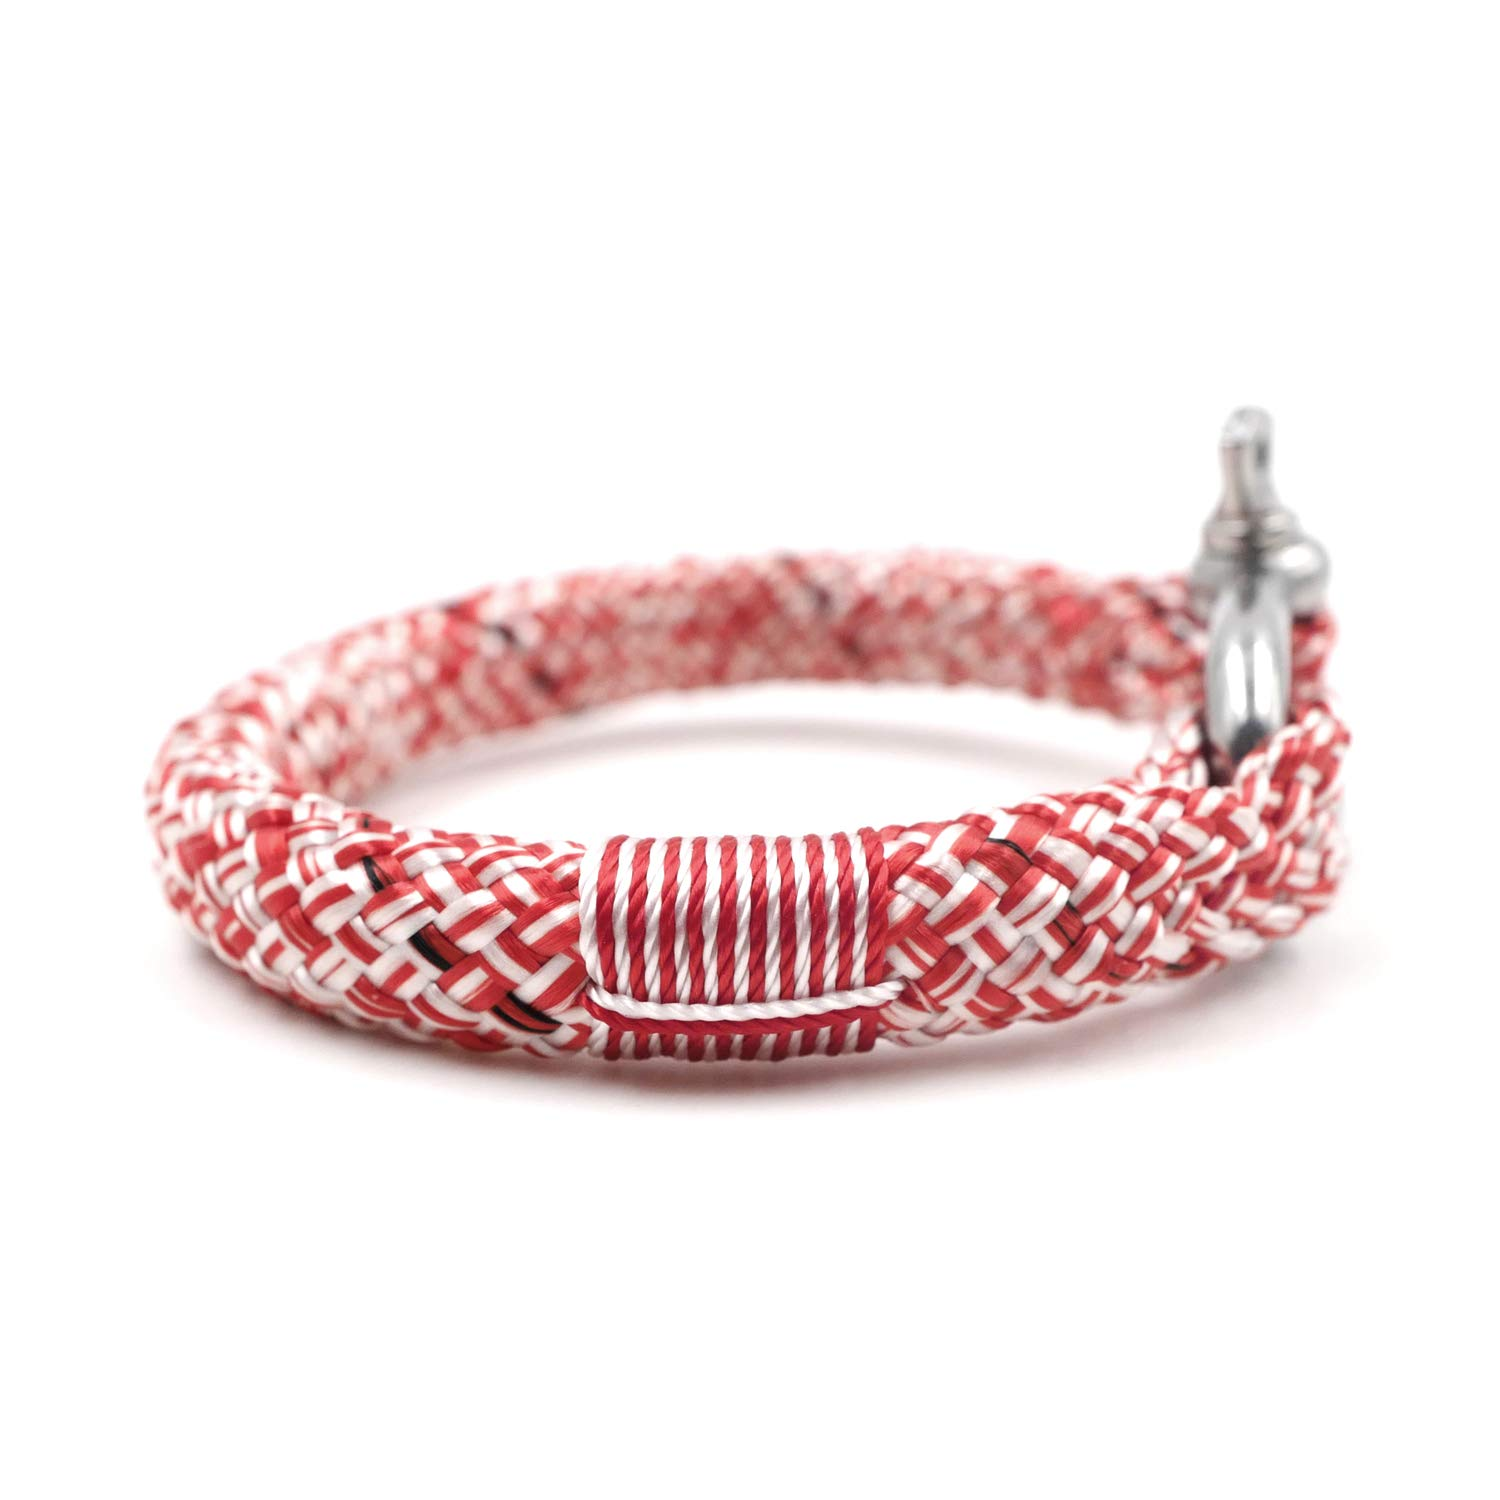 TTHER Nautical Rope - Red White BRT-N526 Hand-Made Nautical Braided Bracelet Yachting Rope Military Paracord Bracelet Wristband with D-Shackle by TTHER